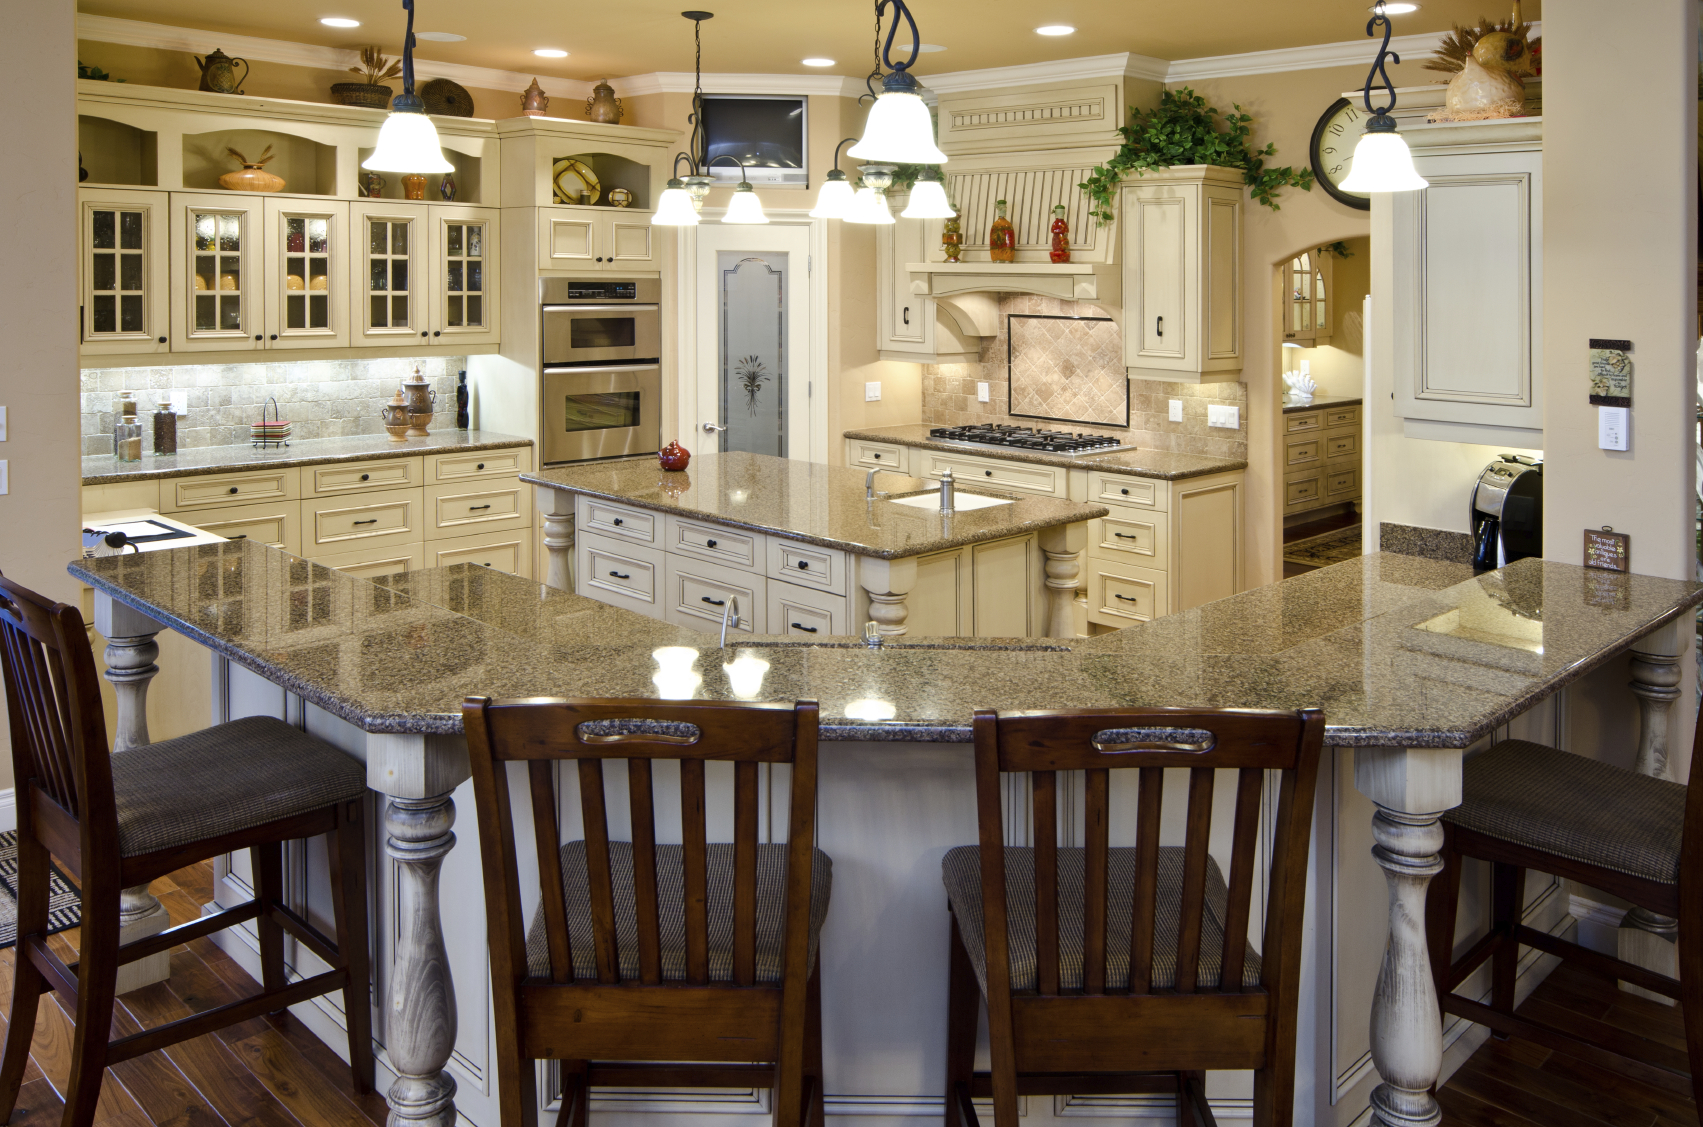 Popular Kitchen Designs 20 Of The Most Popular Kitchen Designs On Home Stratosphere